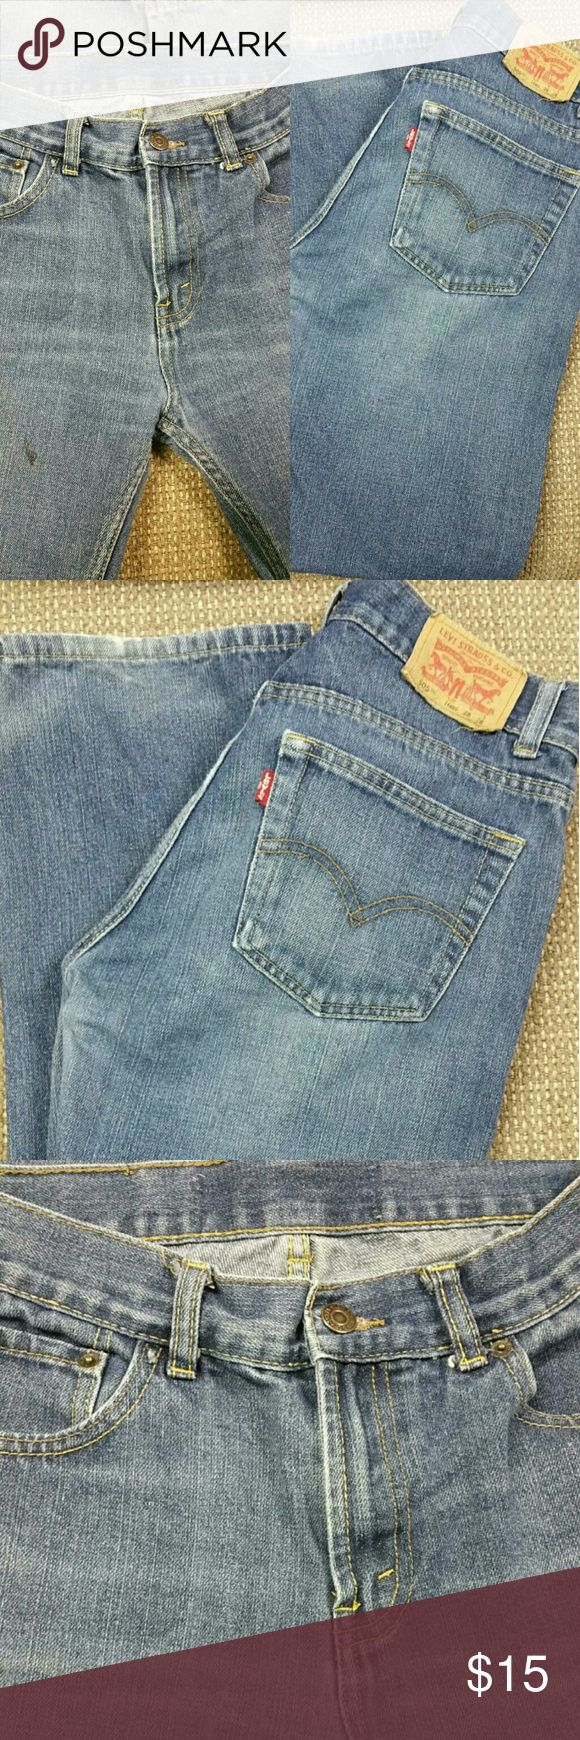 Levi's 505 Jeans Boys size 18, Levi 505 jeans. Great condition, some fading at leg hems, one small dark mark on leg as seen in picture. Levi's 505  Bottoms Jeans